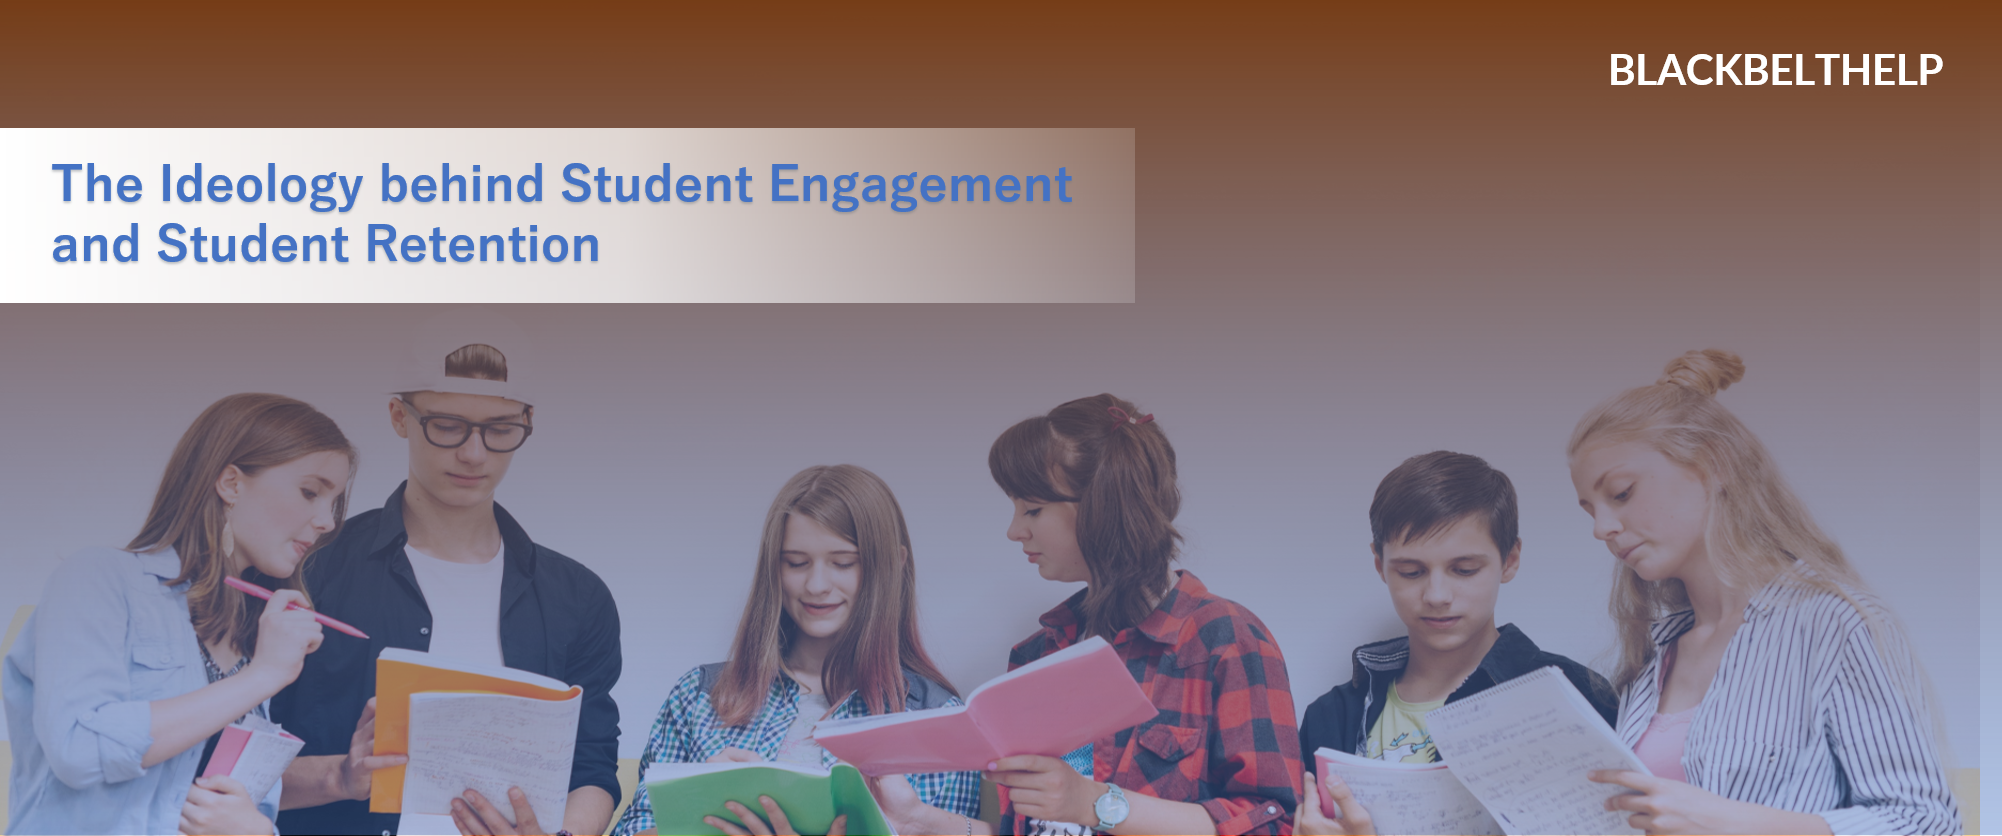 The Ideology behind Student Engagement and Student Retention